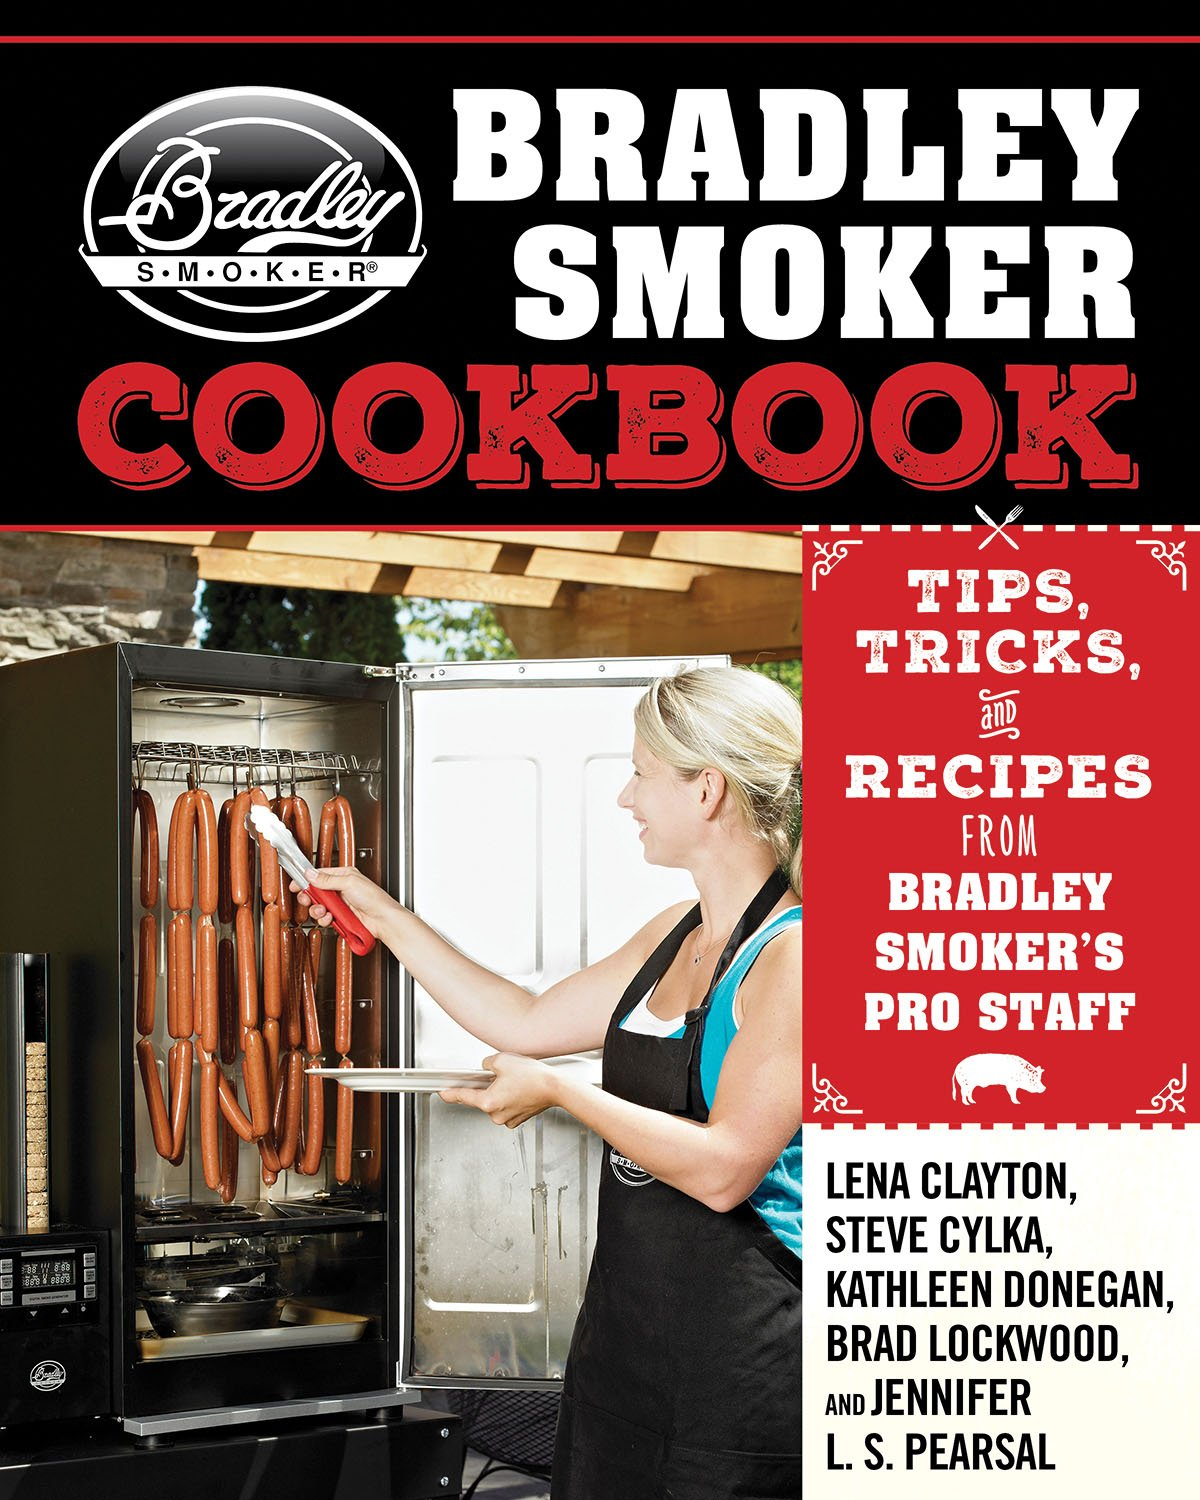 Bradley Smoker Cookbook by Bradley Smoker